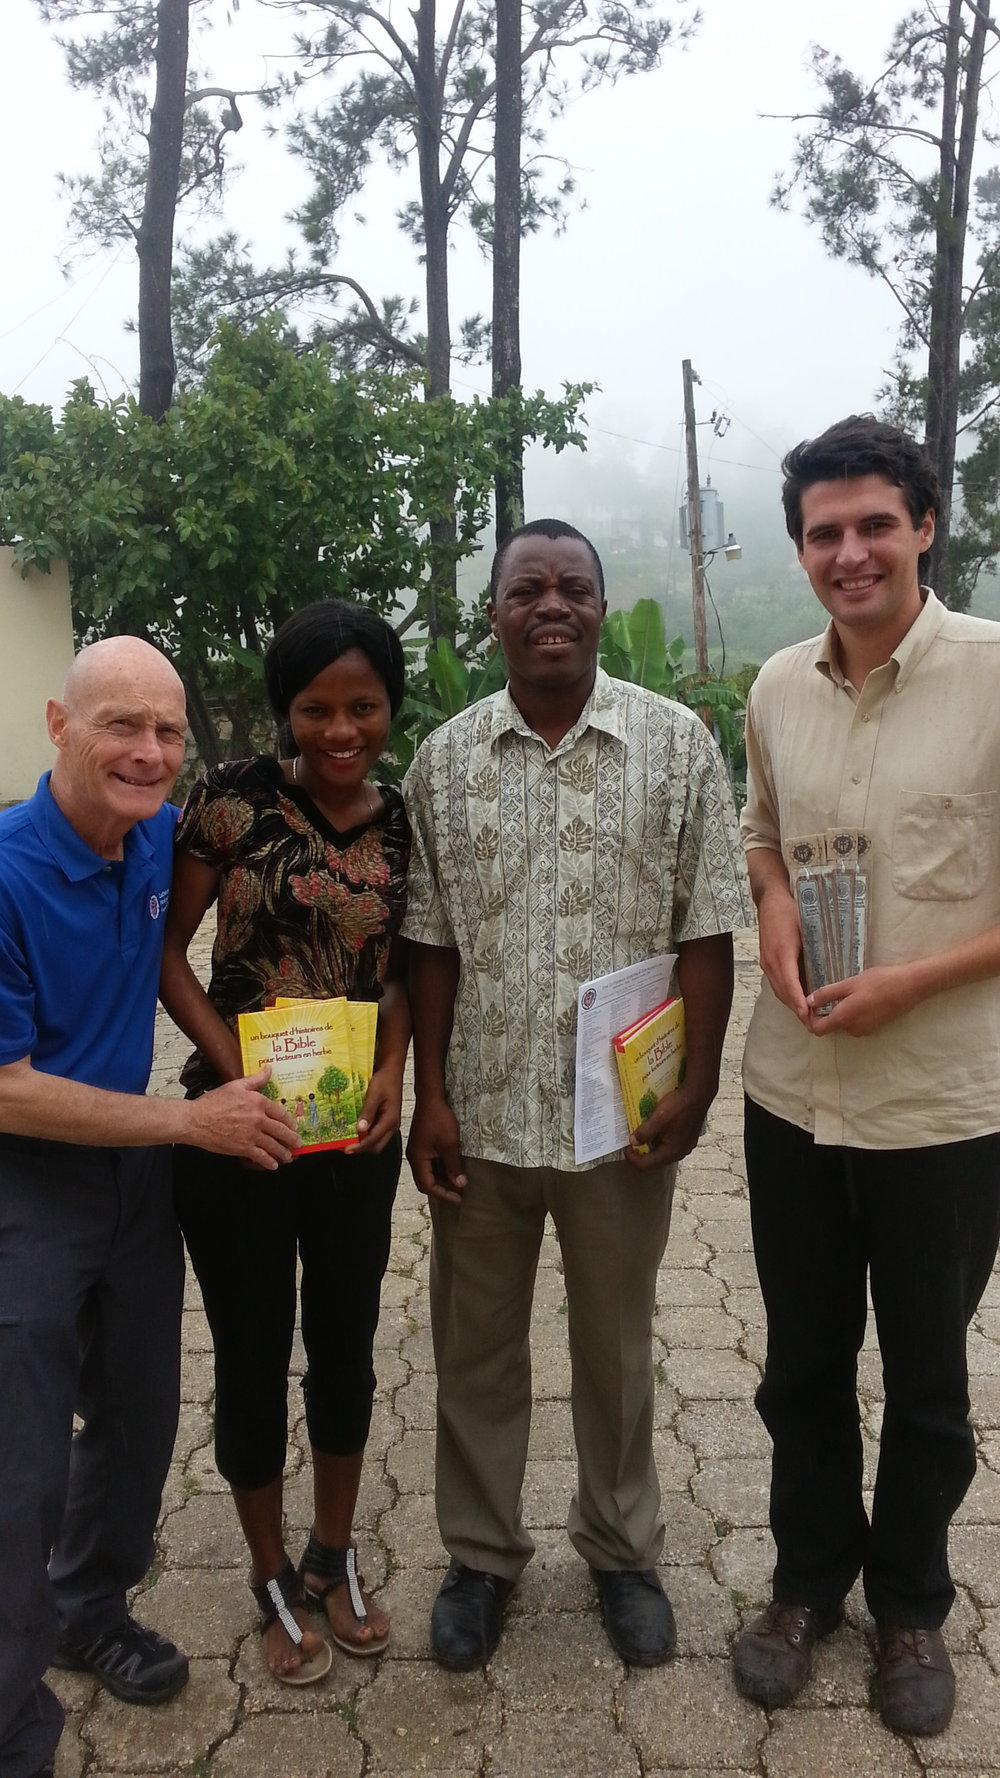 Photo of Rev. Larry Rockemann, Elaine, Rev. Daniel Paul and Ben Wiseman, NEHLM Liaison receiving picture story Bibles.